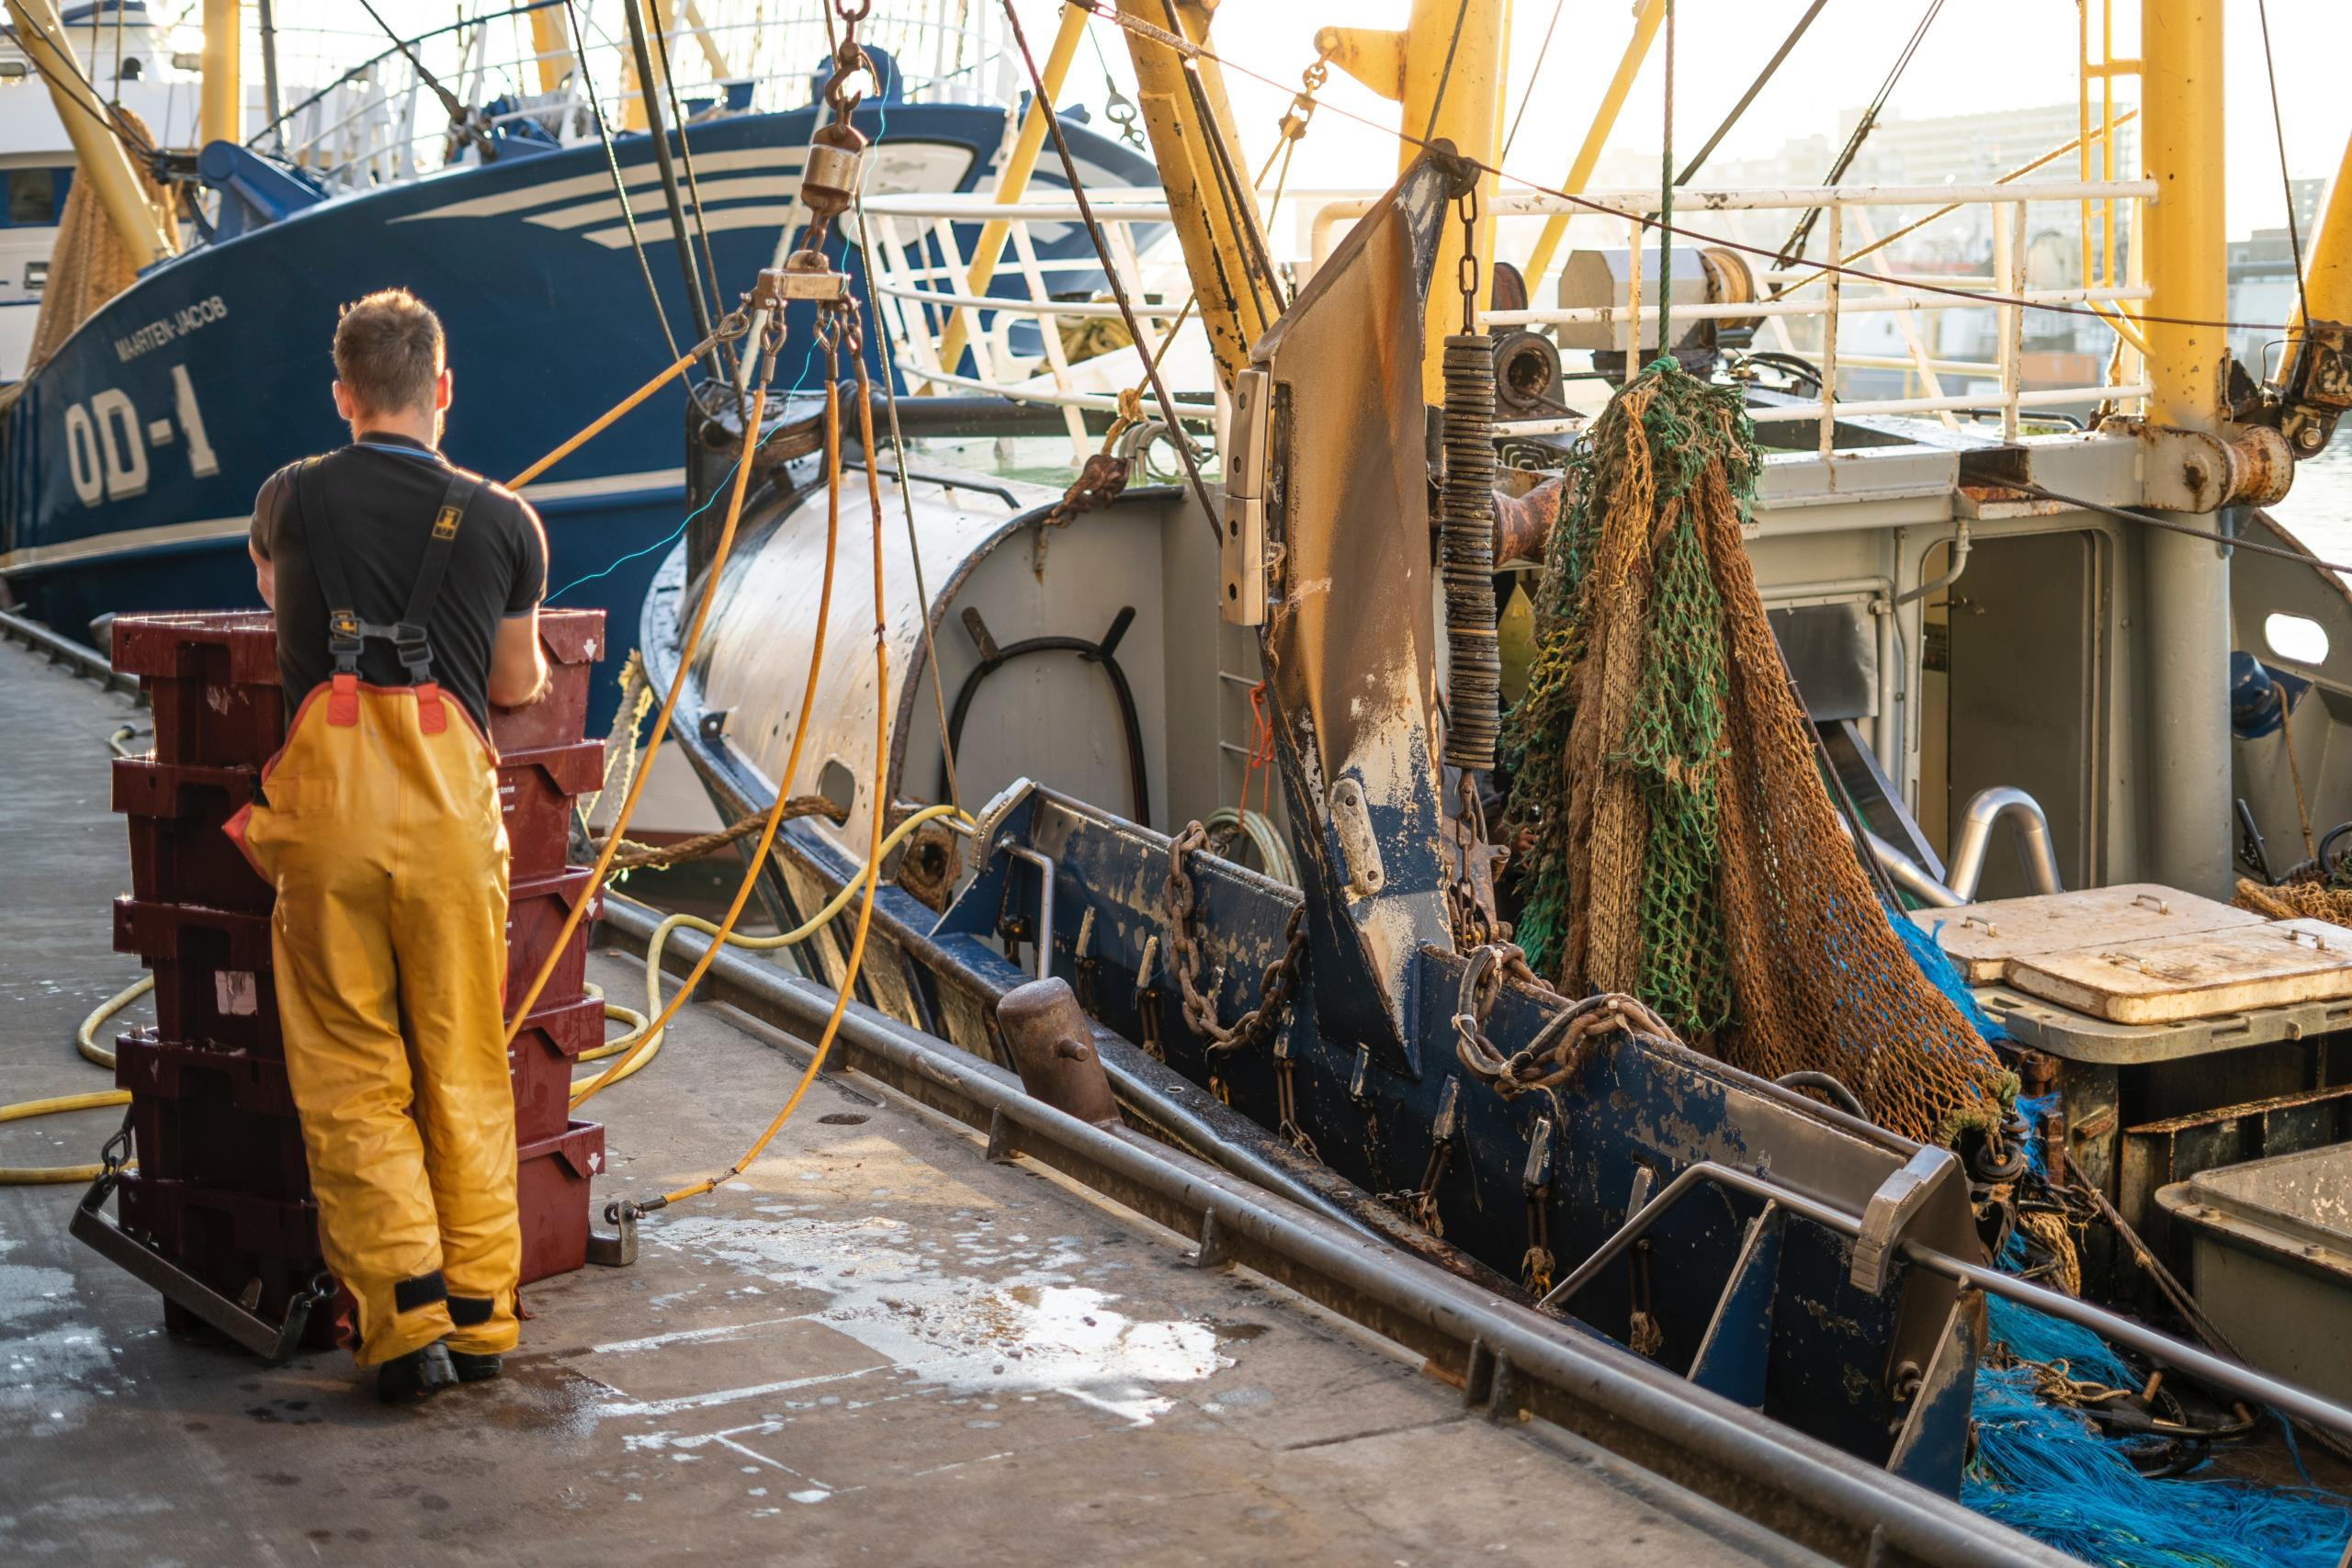 Pandemic leaves oceans vulnerable to increased illegal fishing